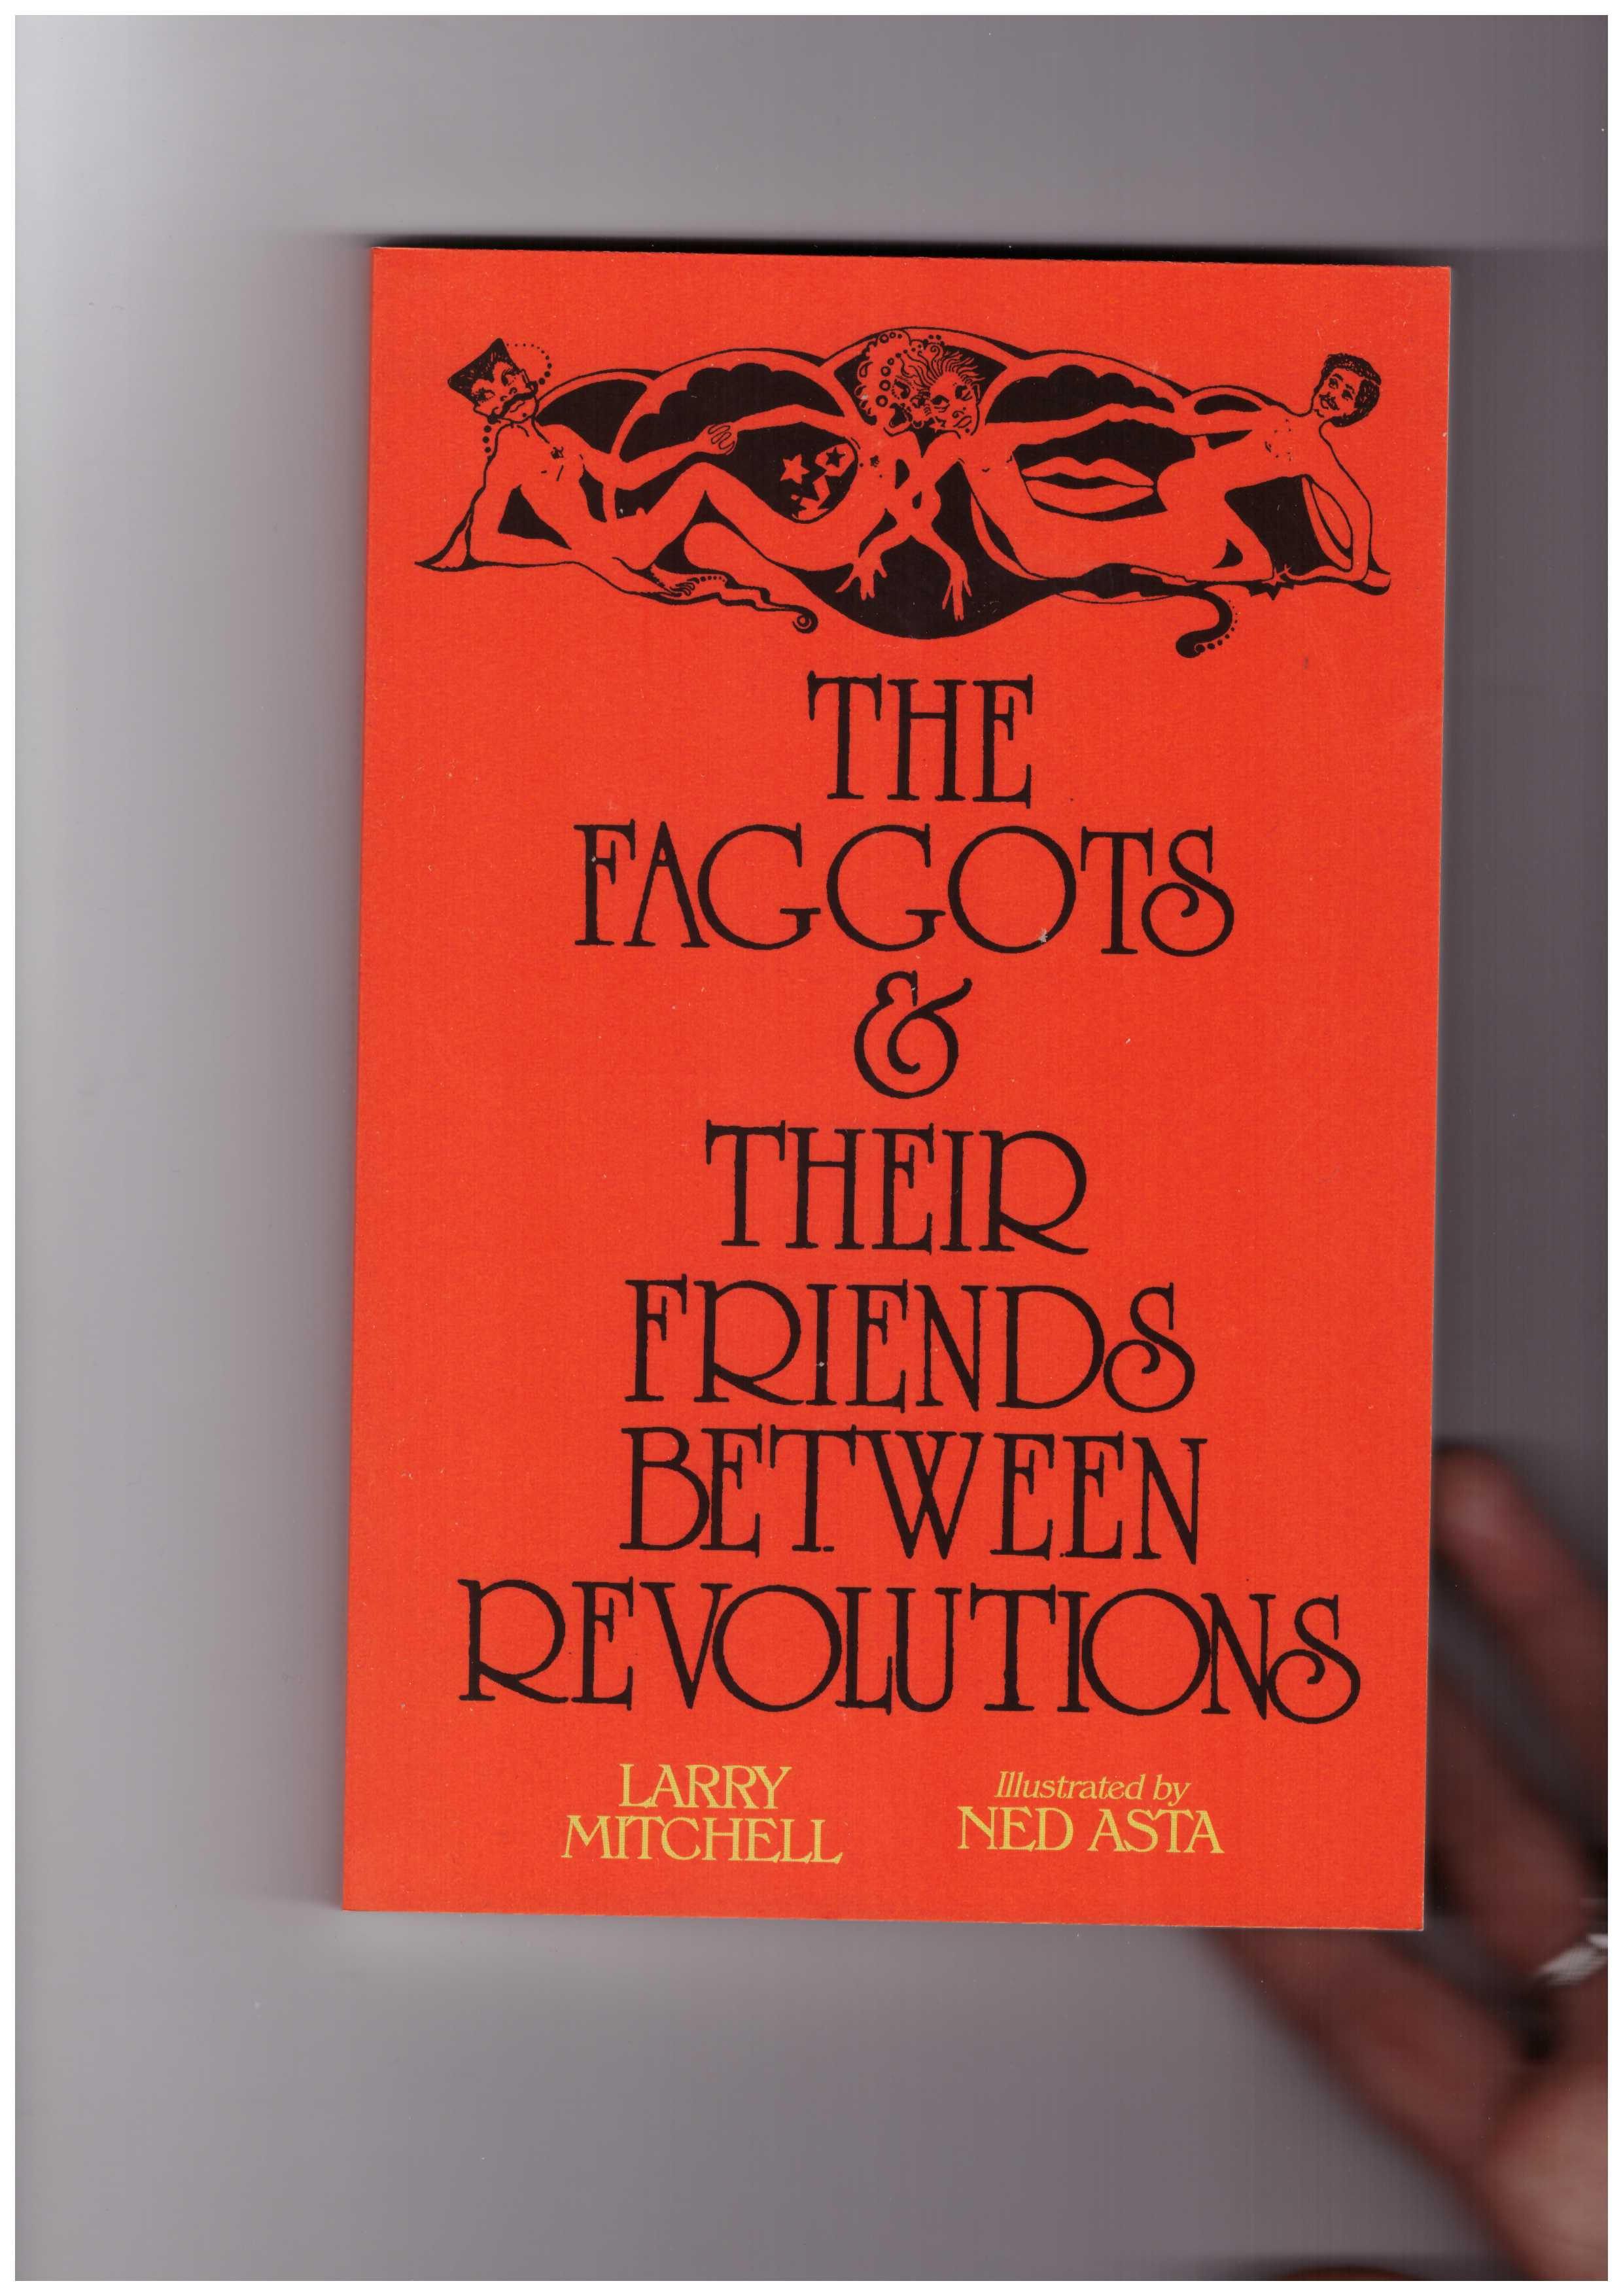 MITCHELL, Larry; ASTA, Ned - The Faggots & Their Friends Between Revolutions